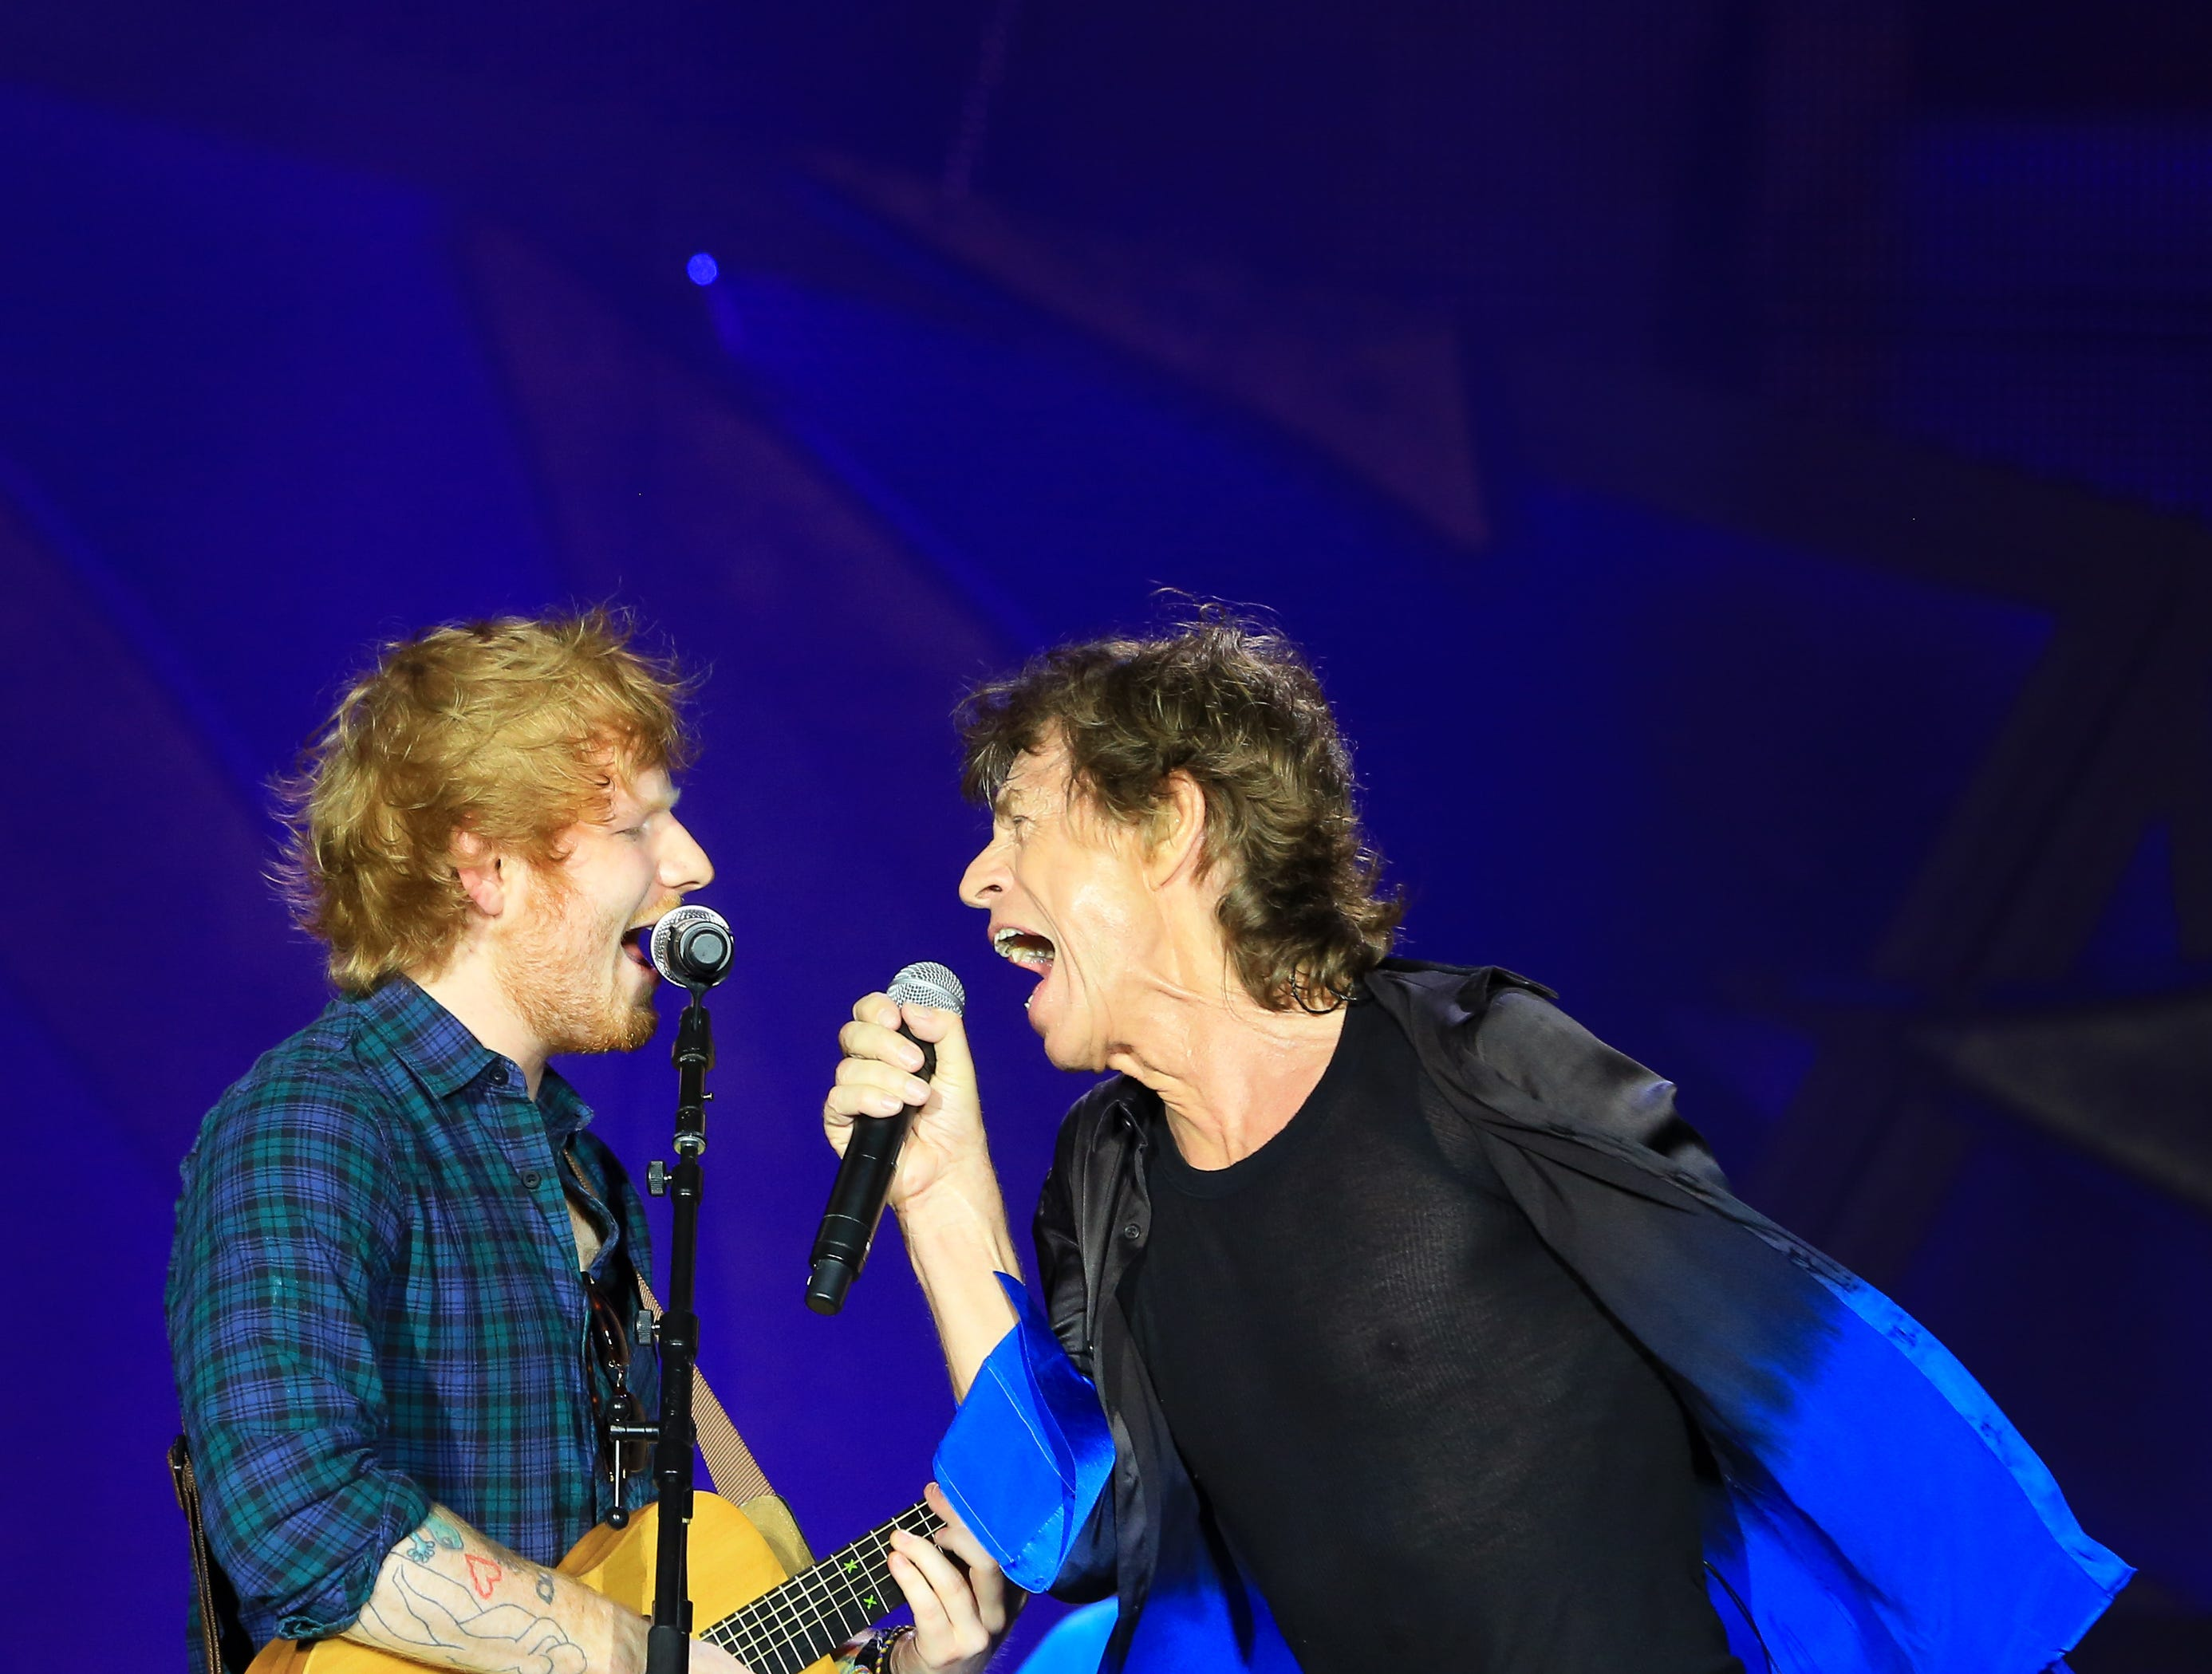 KANSAS CITY, MO - JUNE 27:  Musician Ed Sheeran joins musician Mick Jagger of The Rolling Stones during The Rolling Stones North American 'ZIP CODE' Tour at Arrowhead Stadium on June 27, 2015 in Kansas City, Missouri.  (Photo by Jason Squires/WireImage) ORG XMIT: 561123863 ORIG FILE ID: 478837296